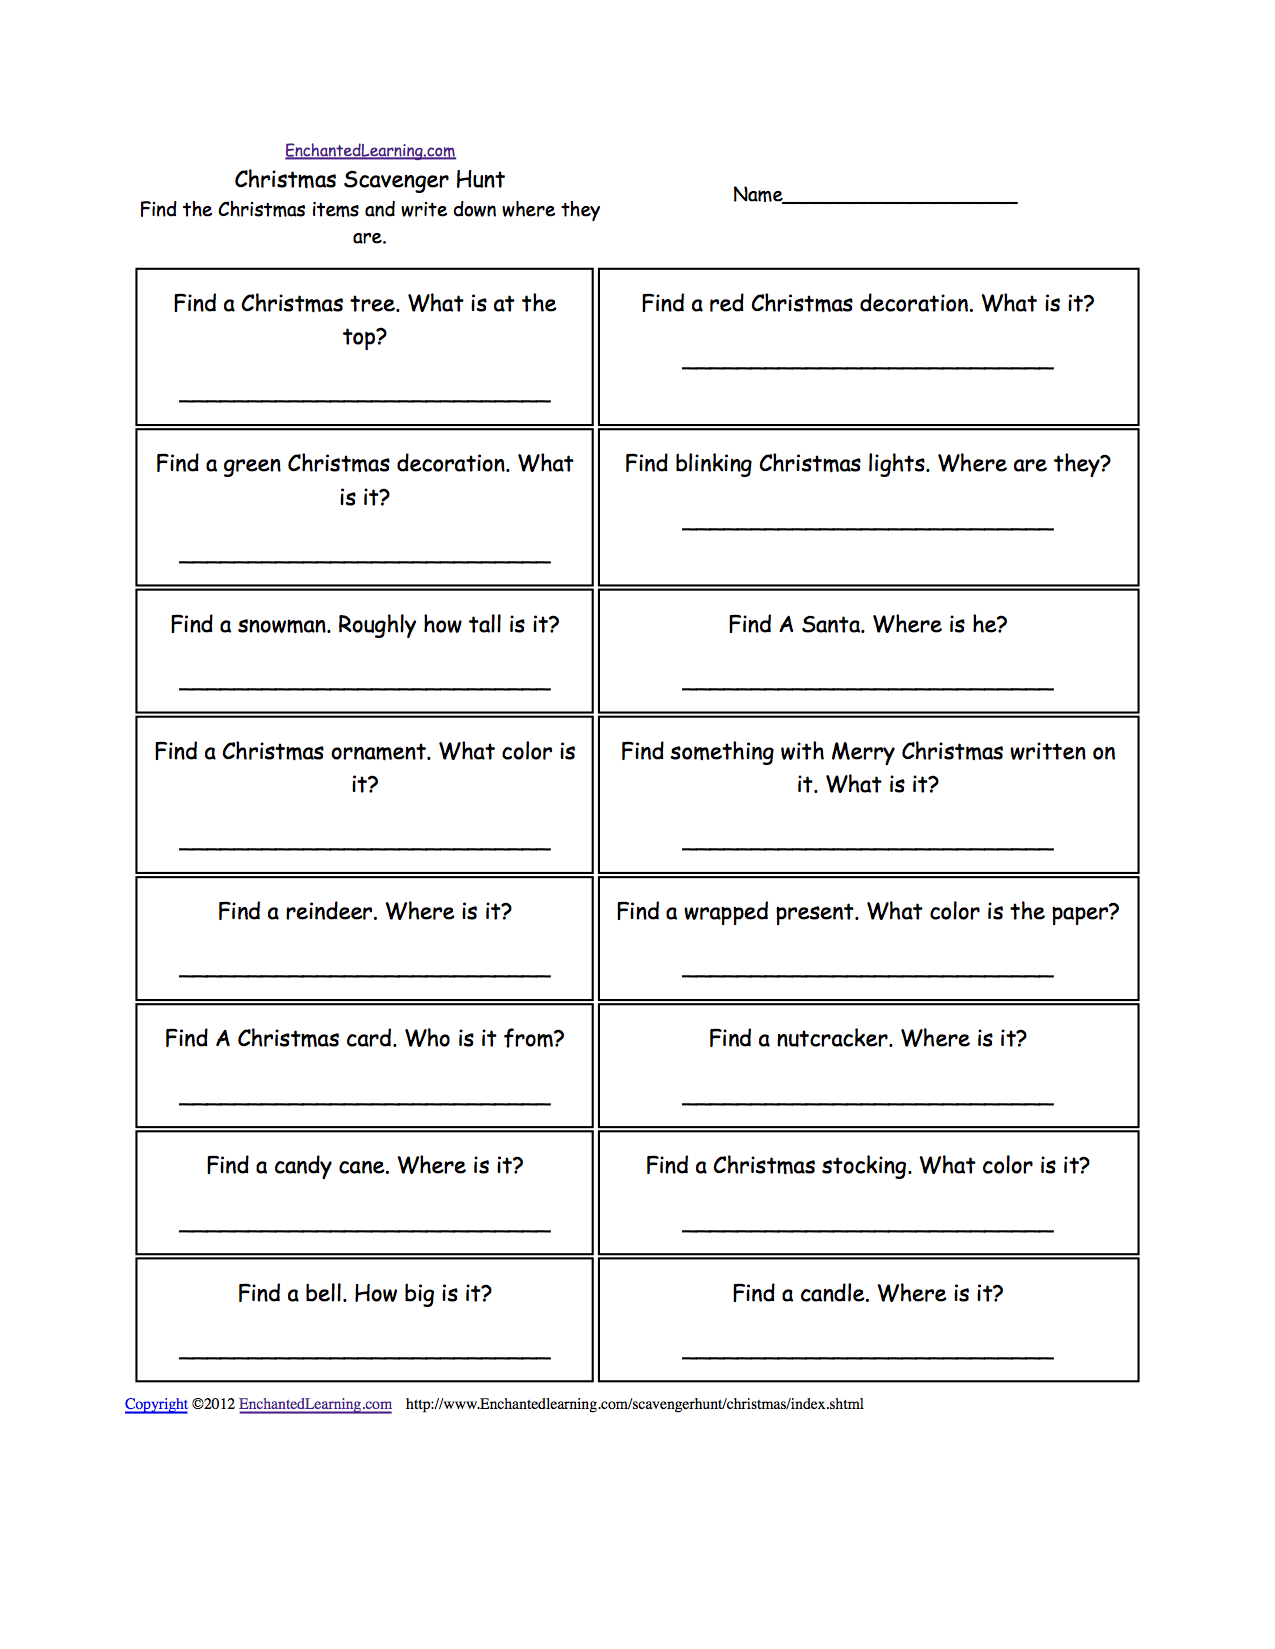 Worksheets Internet Scavenger Hunt Worksheet scavenger hunts to print enchantedlearning com hunt